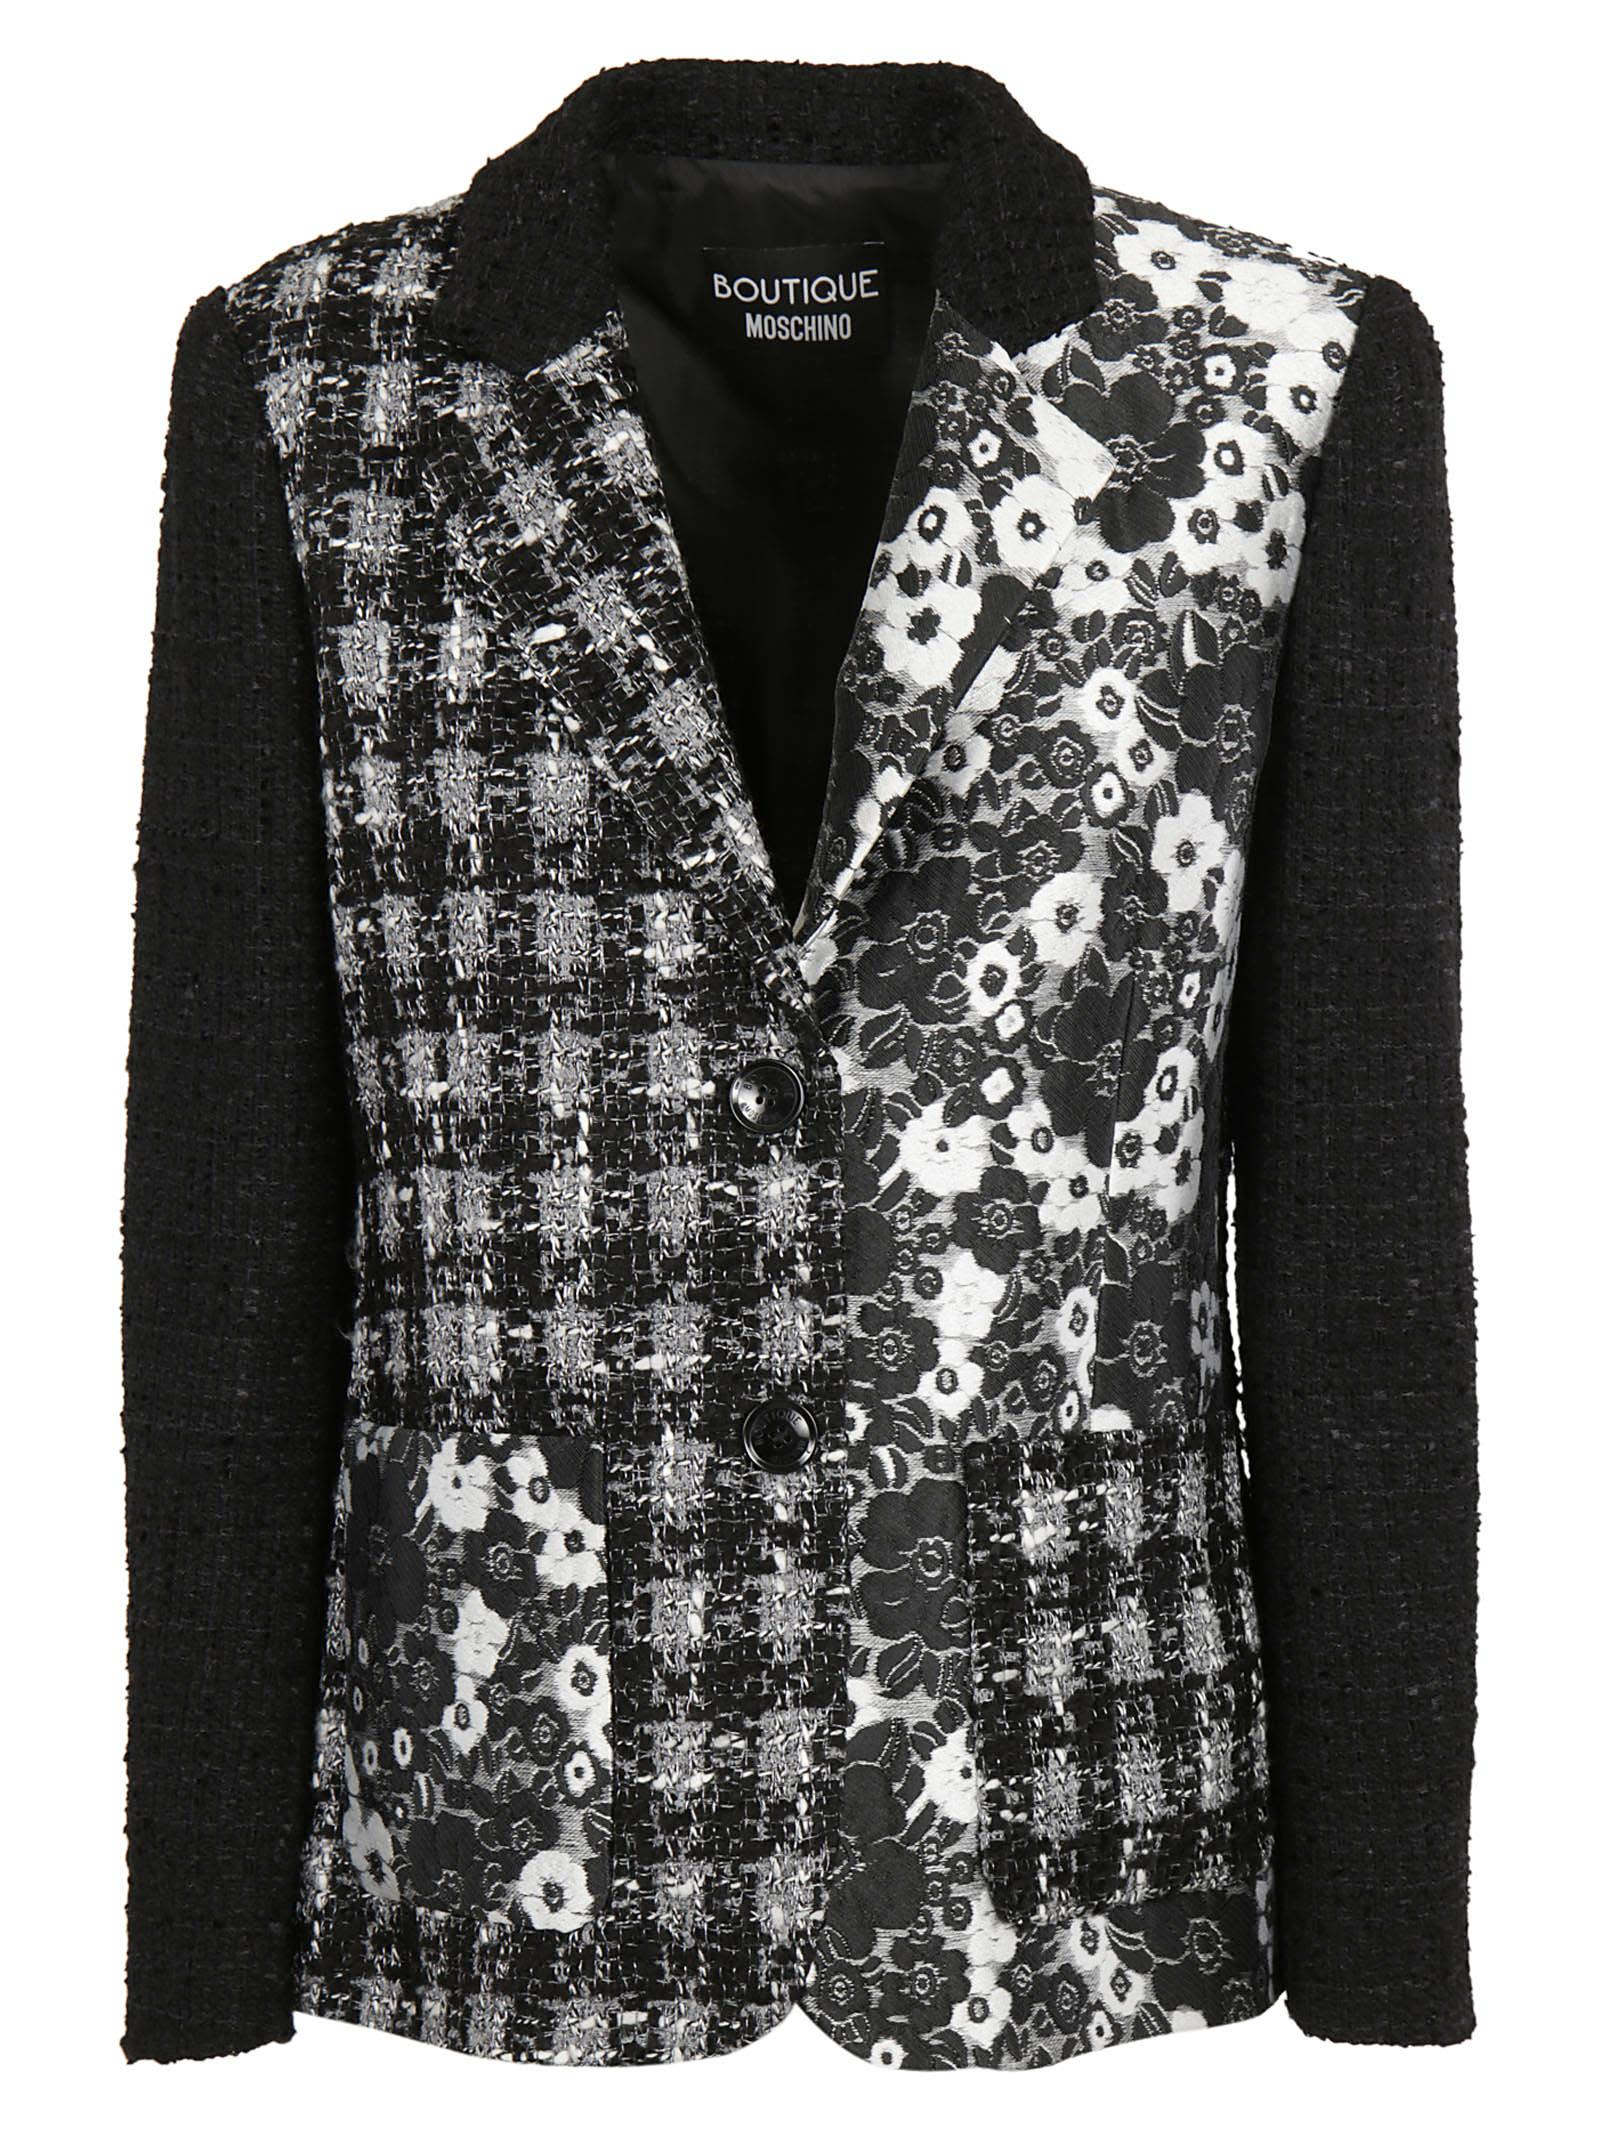 Boutique Moschino Floral Print Jacket